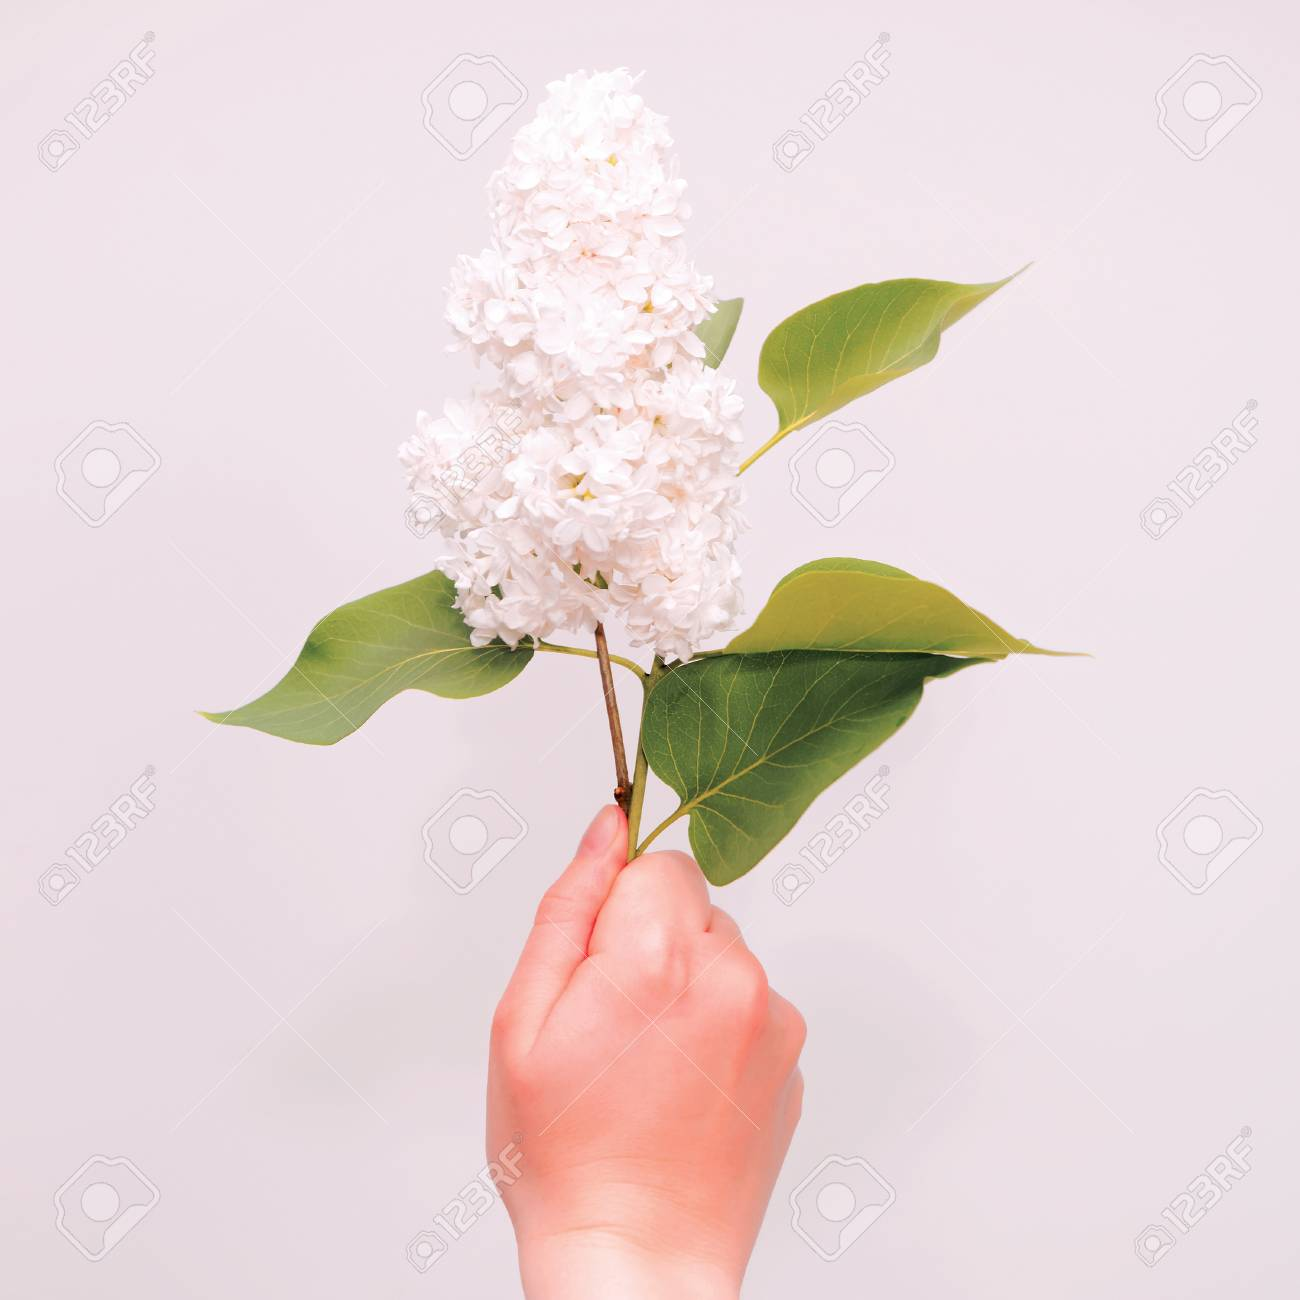 Twig Of White Lilac Flowers On White Background Flat Lay Top